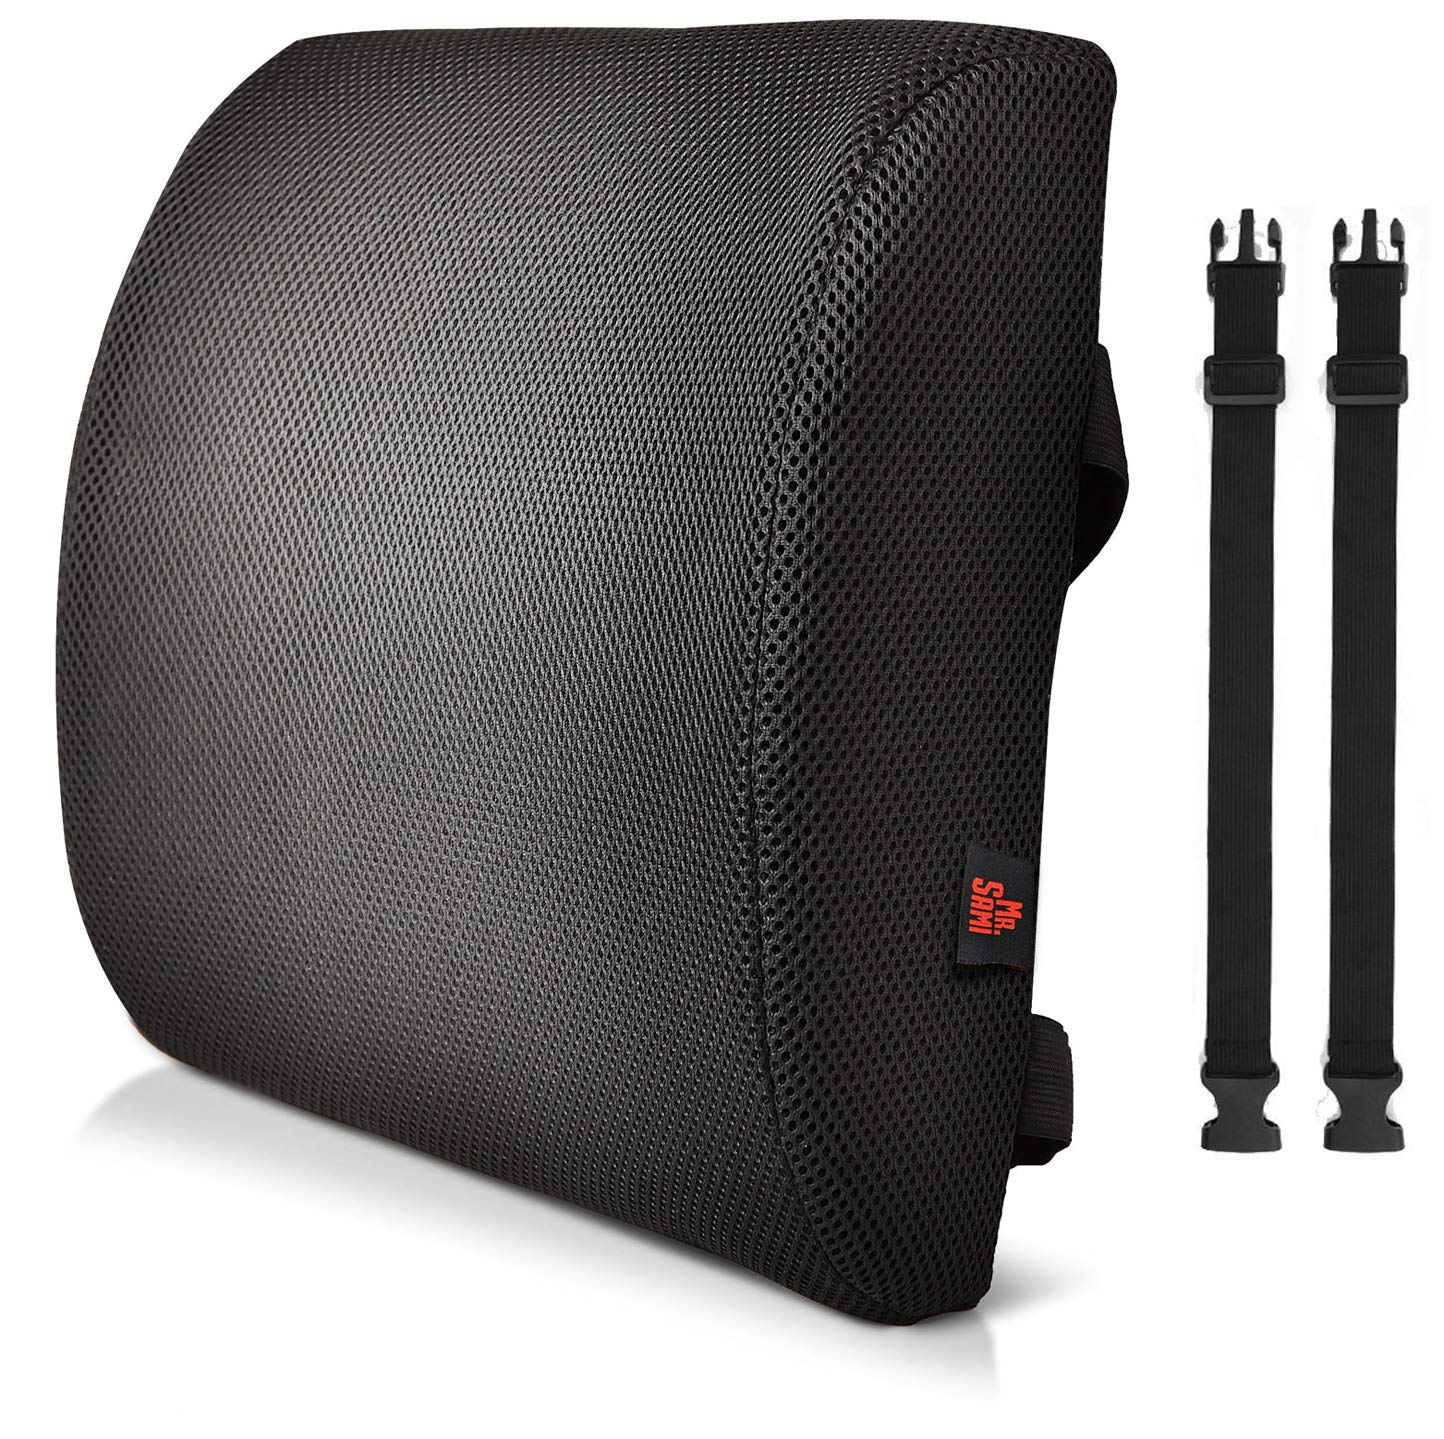 Lumbar support cushions for lower back support - Premium memory foam pillow back support for office chair, wheelchair, car seat, on a plane and home use. New ergonomic design with cool black non-slip breathable mesh material & double adjustable straps